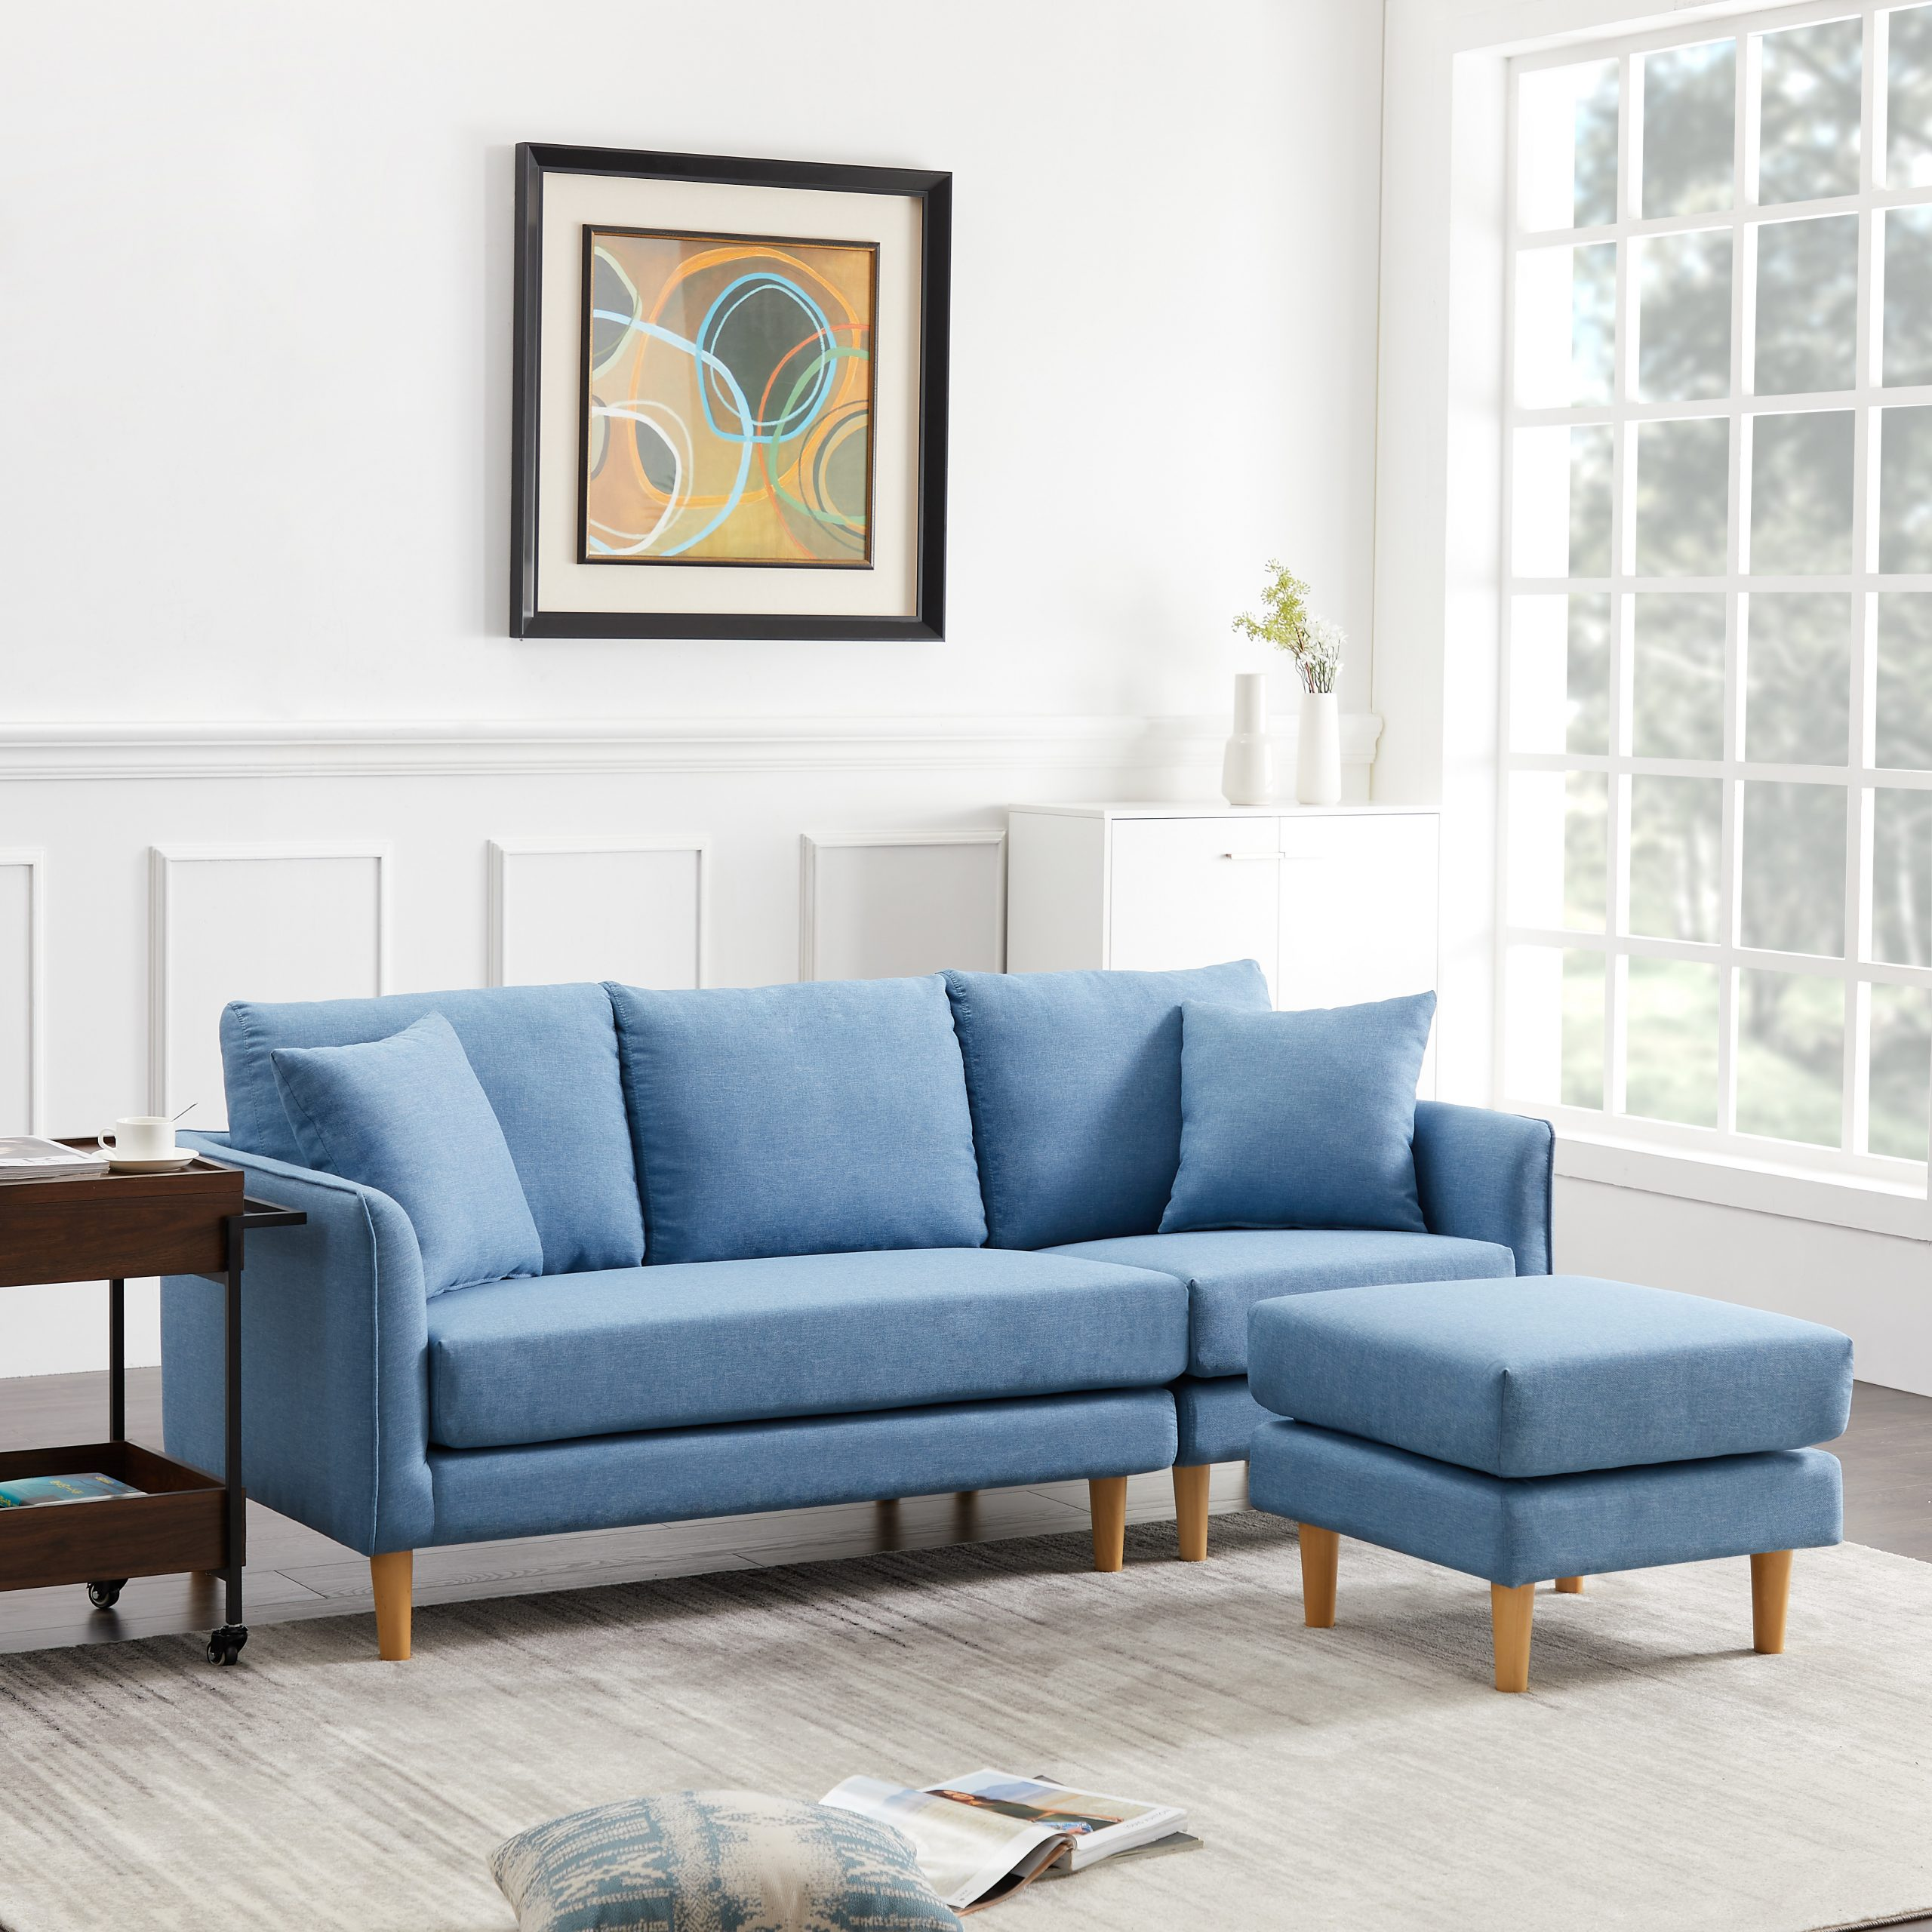 Urhomepro Reversible Sectional Sofa Couch, Modern 3 Seat Inside Dove Mid Century Sectional Sofas Dark Blue (View 14 of 15)